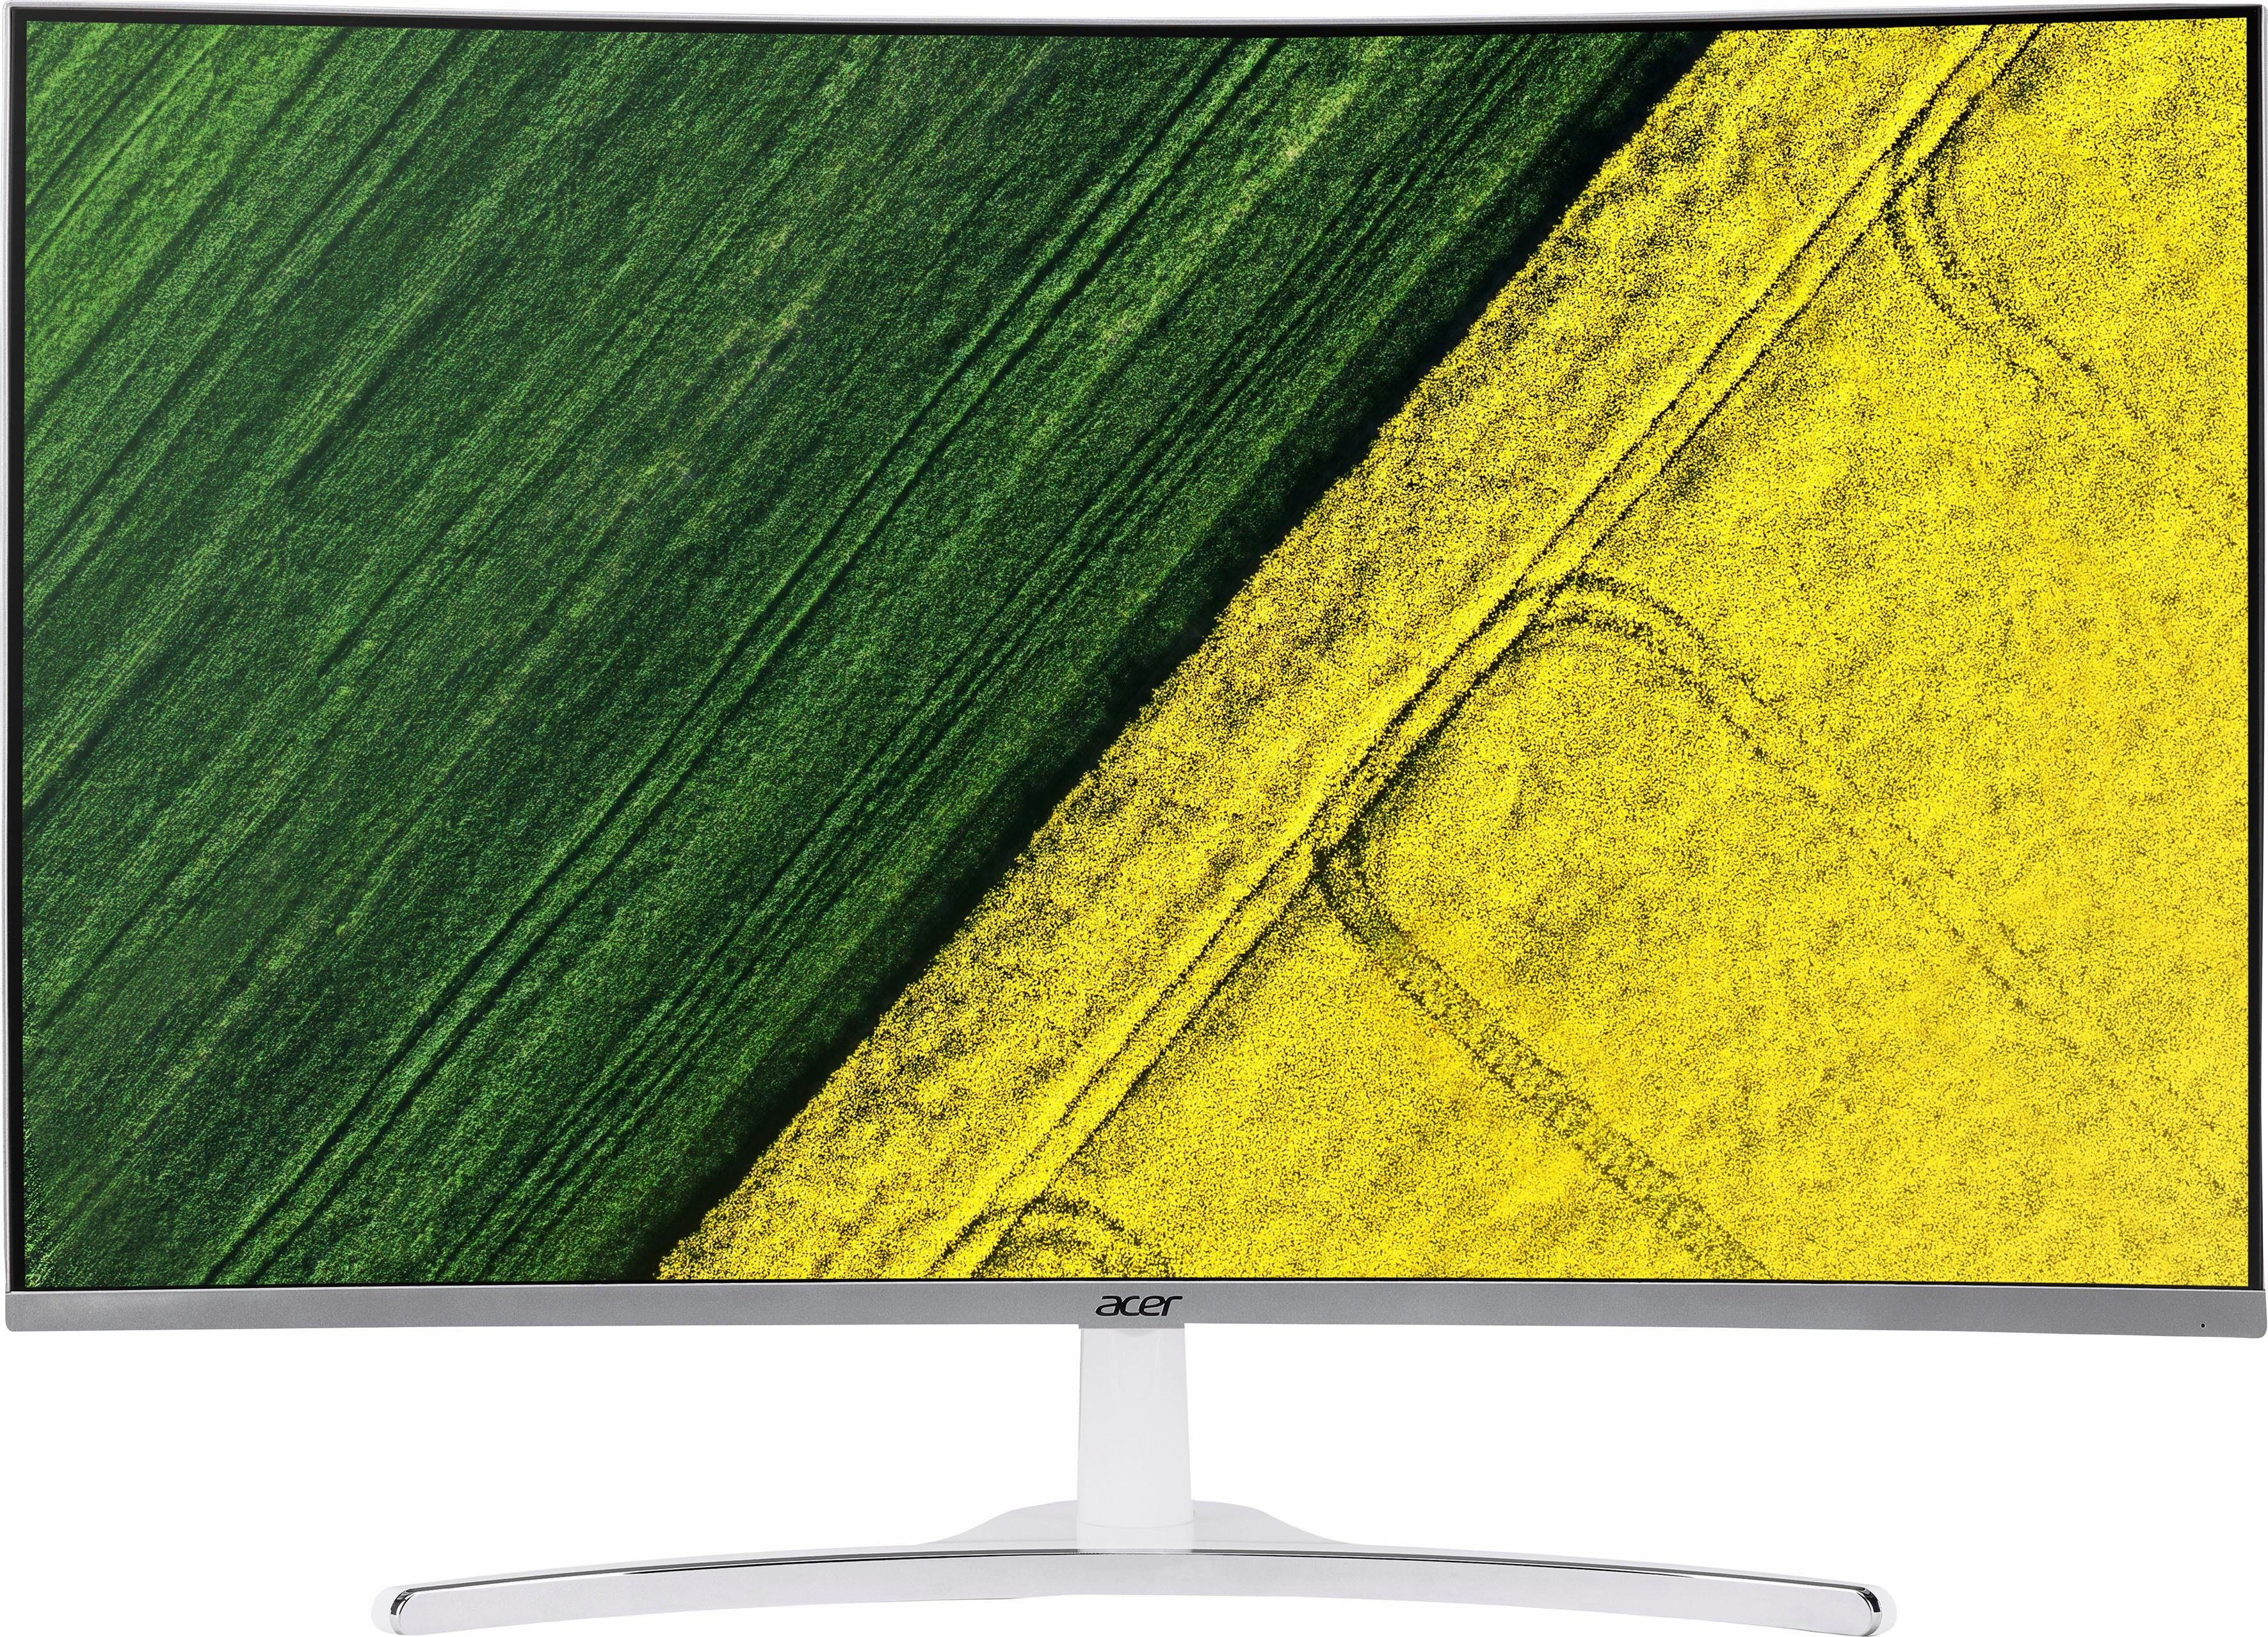 """Acer 32"""" ED322 Display LED-Monitor (1920 x 1080 Pixel, Full HD, 4 ms Reaktionszeit, Acer ComfyView, Curved Monitor, BlueLightShield & Flicker-less Technologie)"""